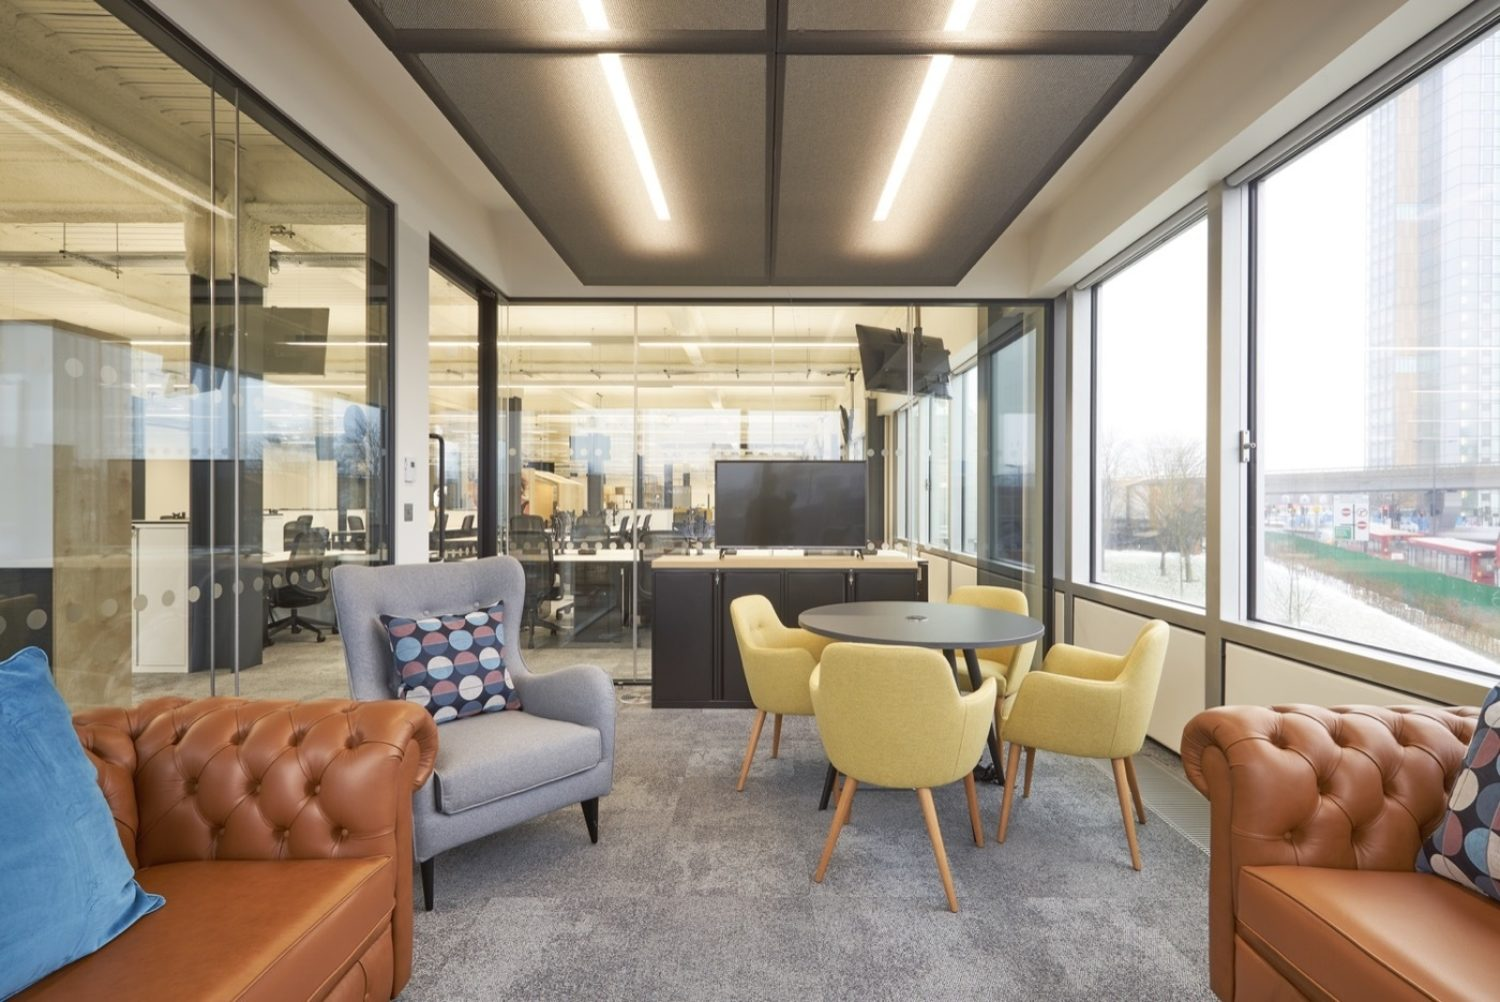 ITV office fit out with natural light